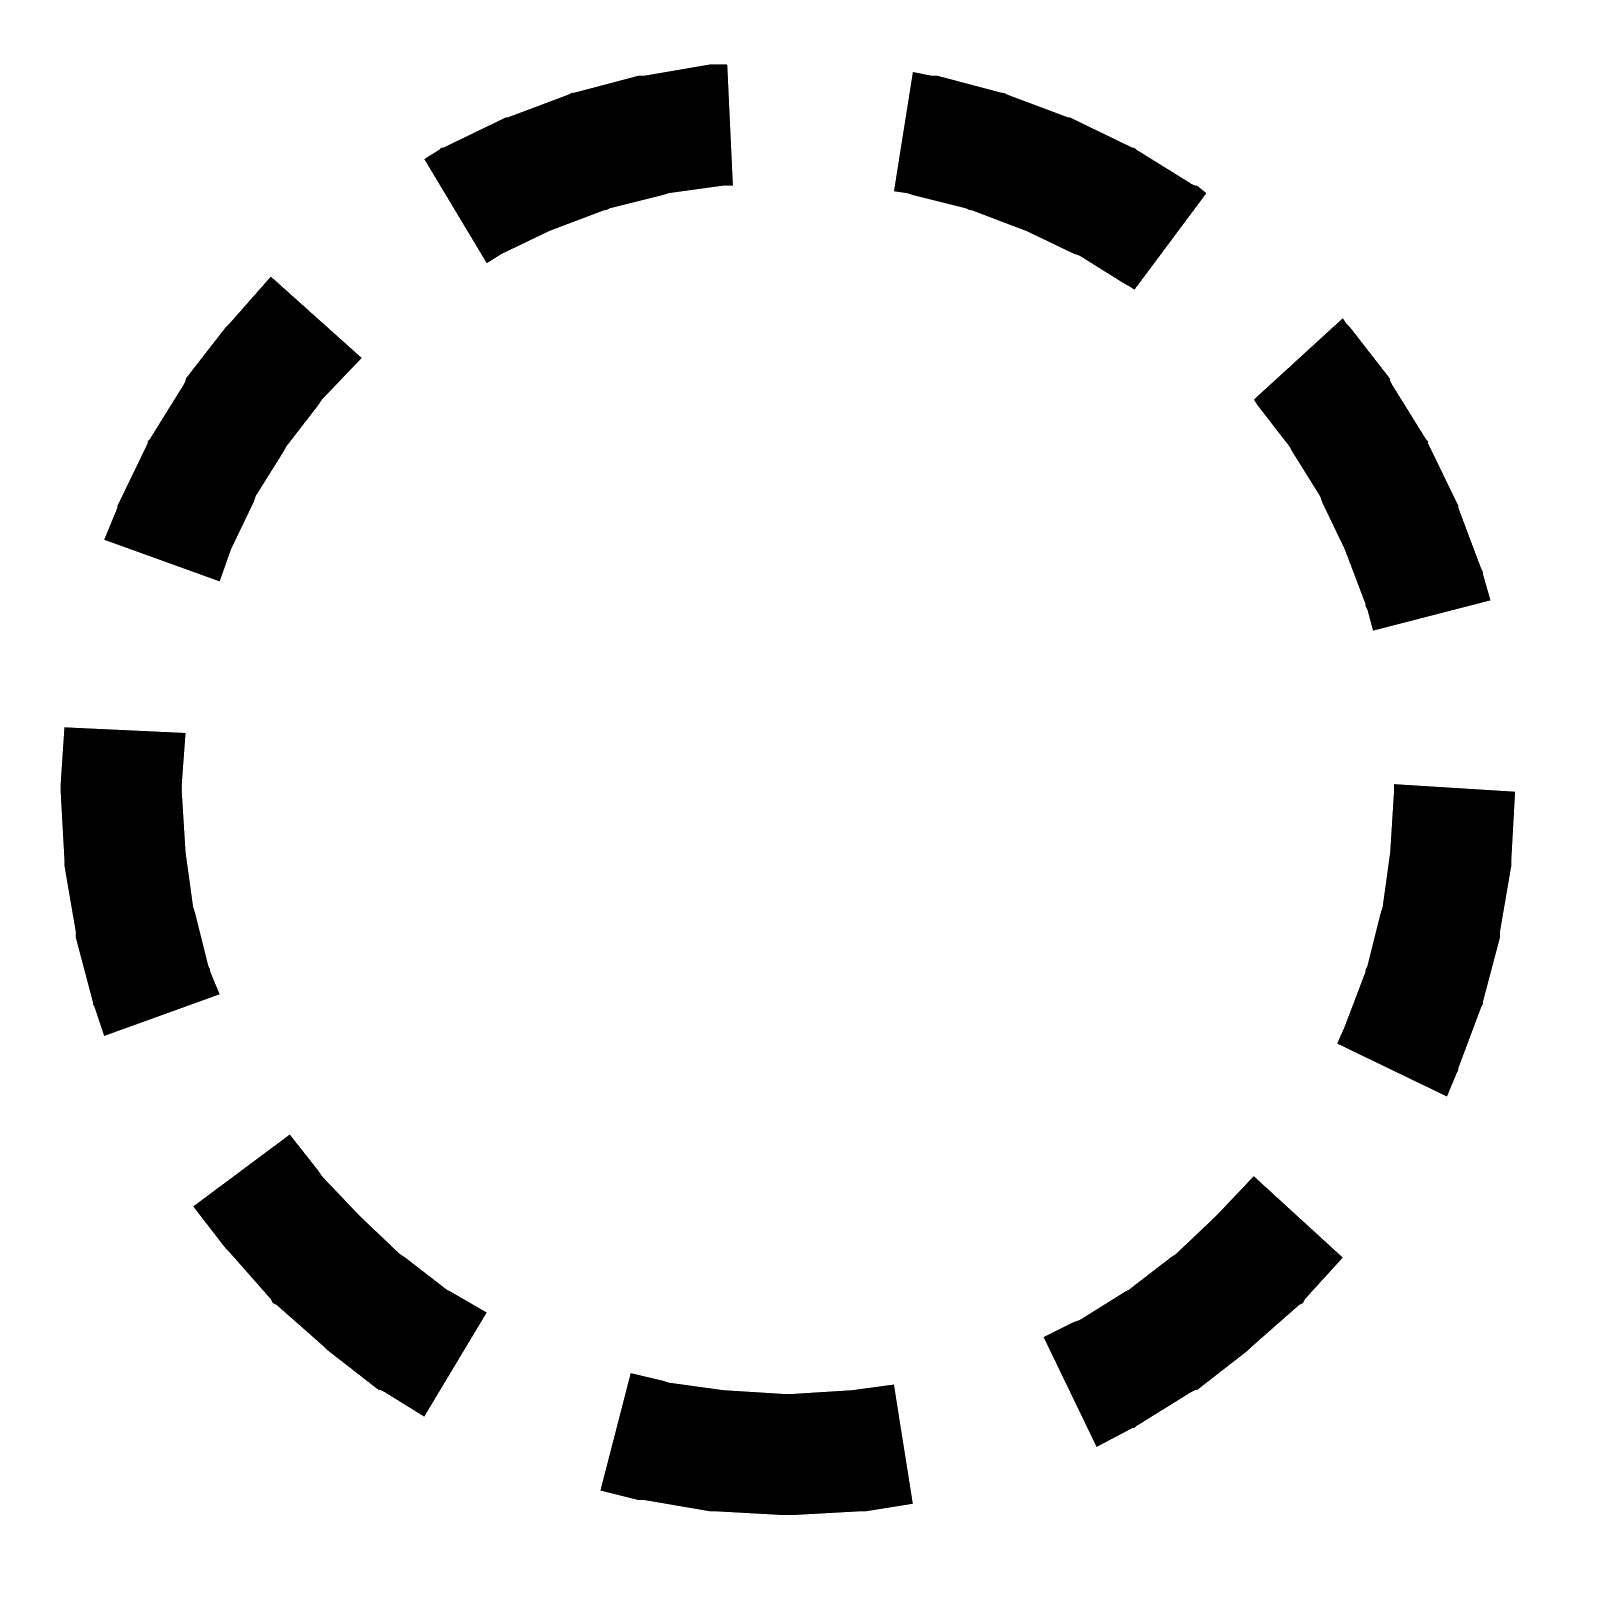 Dashed circle png. Inactive state